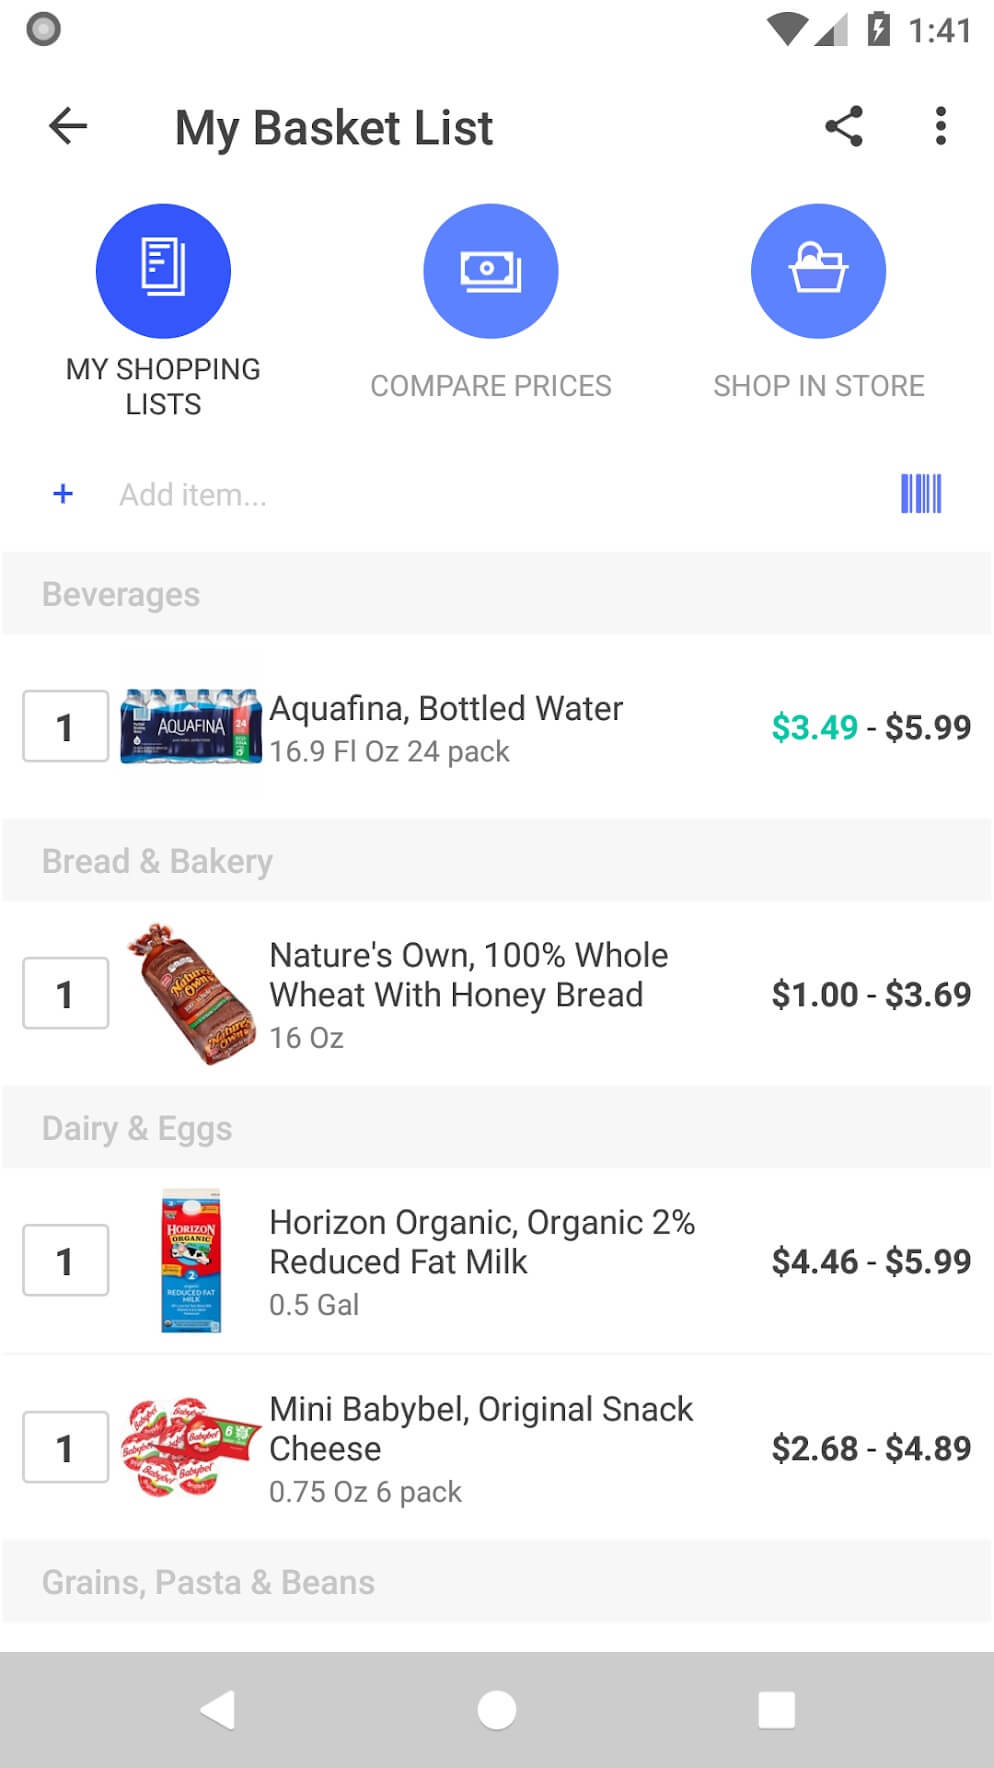 basket-savings-best-grocery-store-price-comparison-apps-1